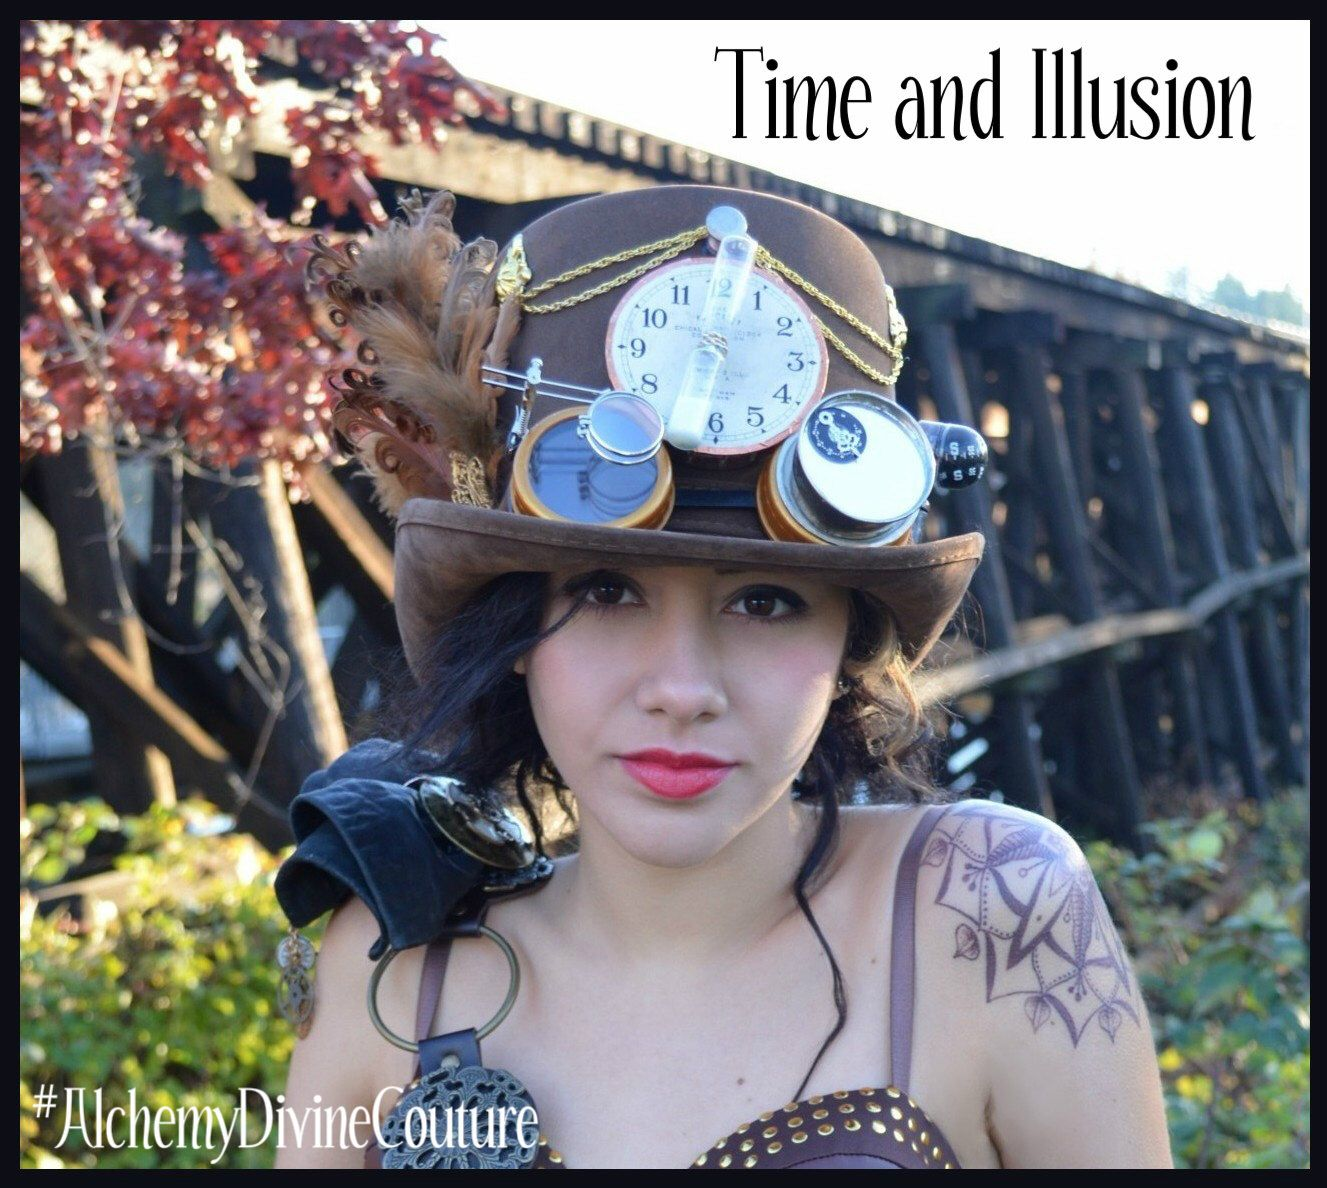 Steampunk Top Hat, Brown Top Hat, Clock, Goggles, Compass, Feathers by Alchemy Divine Couture by AlchemyDivine on Etsy https://www.etsy.com/ca/listing/267499766/steampunk-top-hat-brown-top-hat-clock